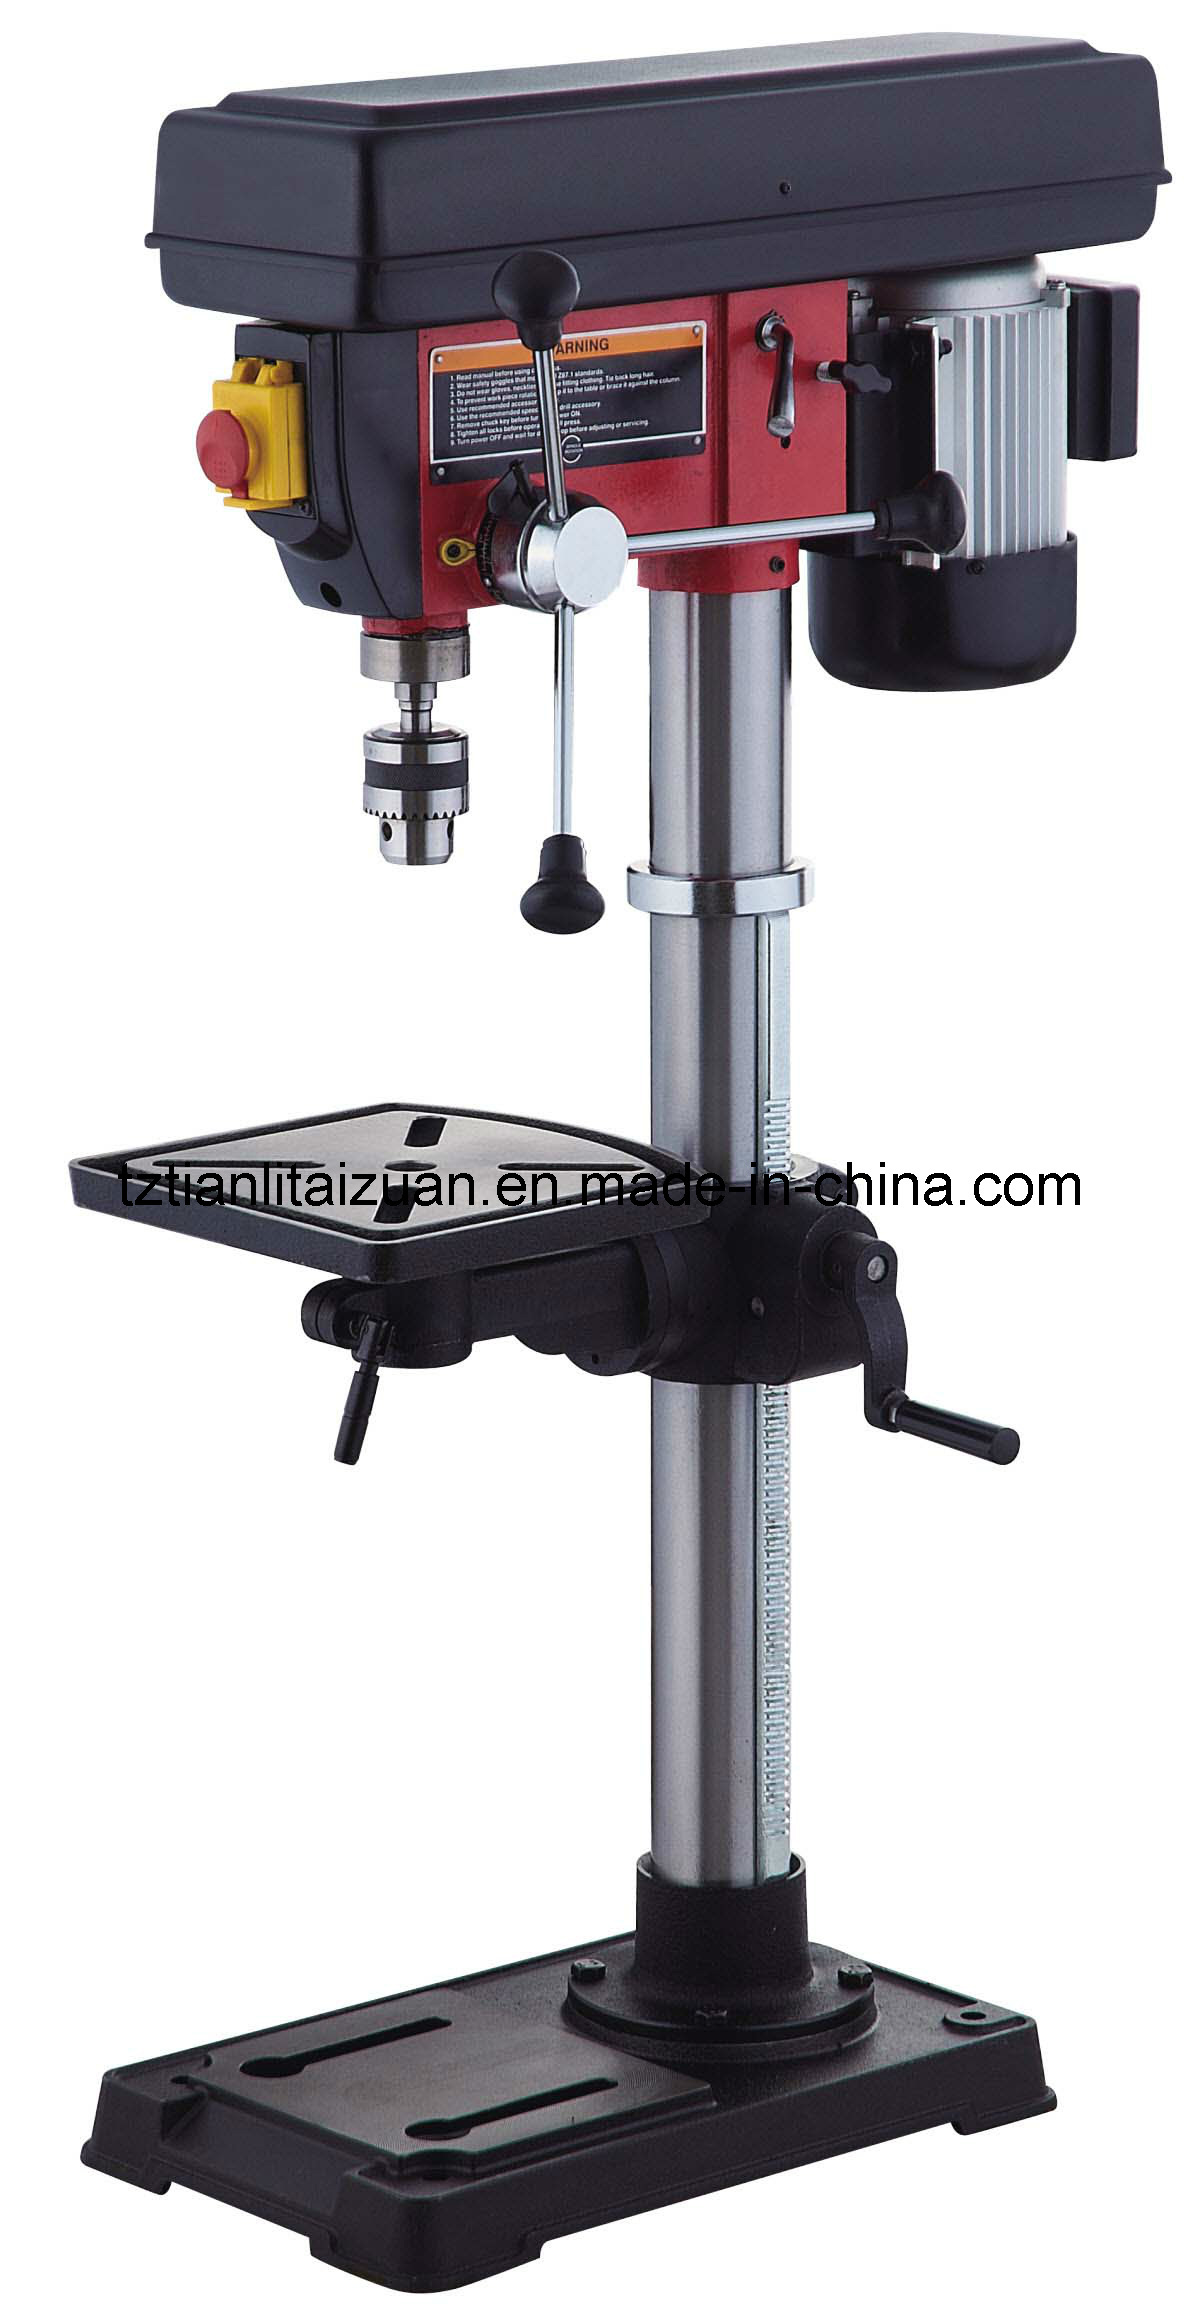 China 16mm Bench Drill Press With 550w 600w Motor Dp33016b 13 China Drilling Machine